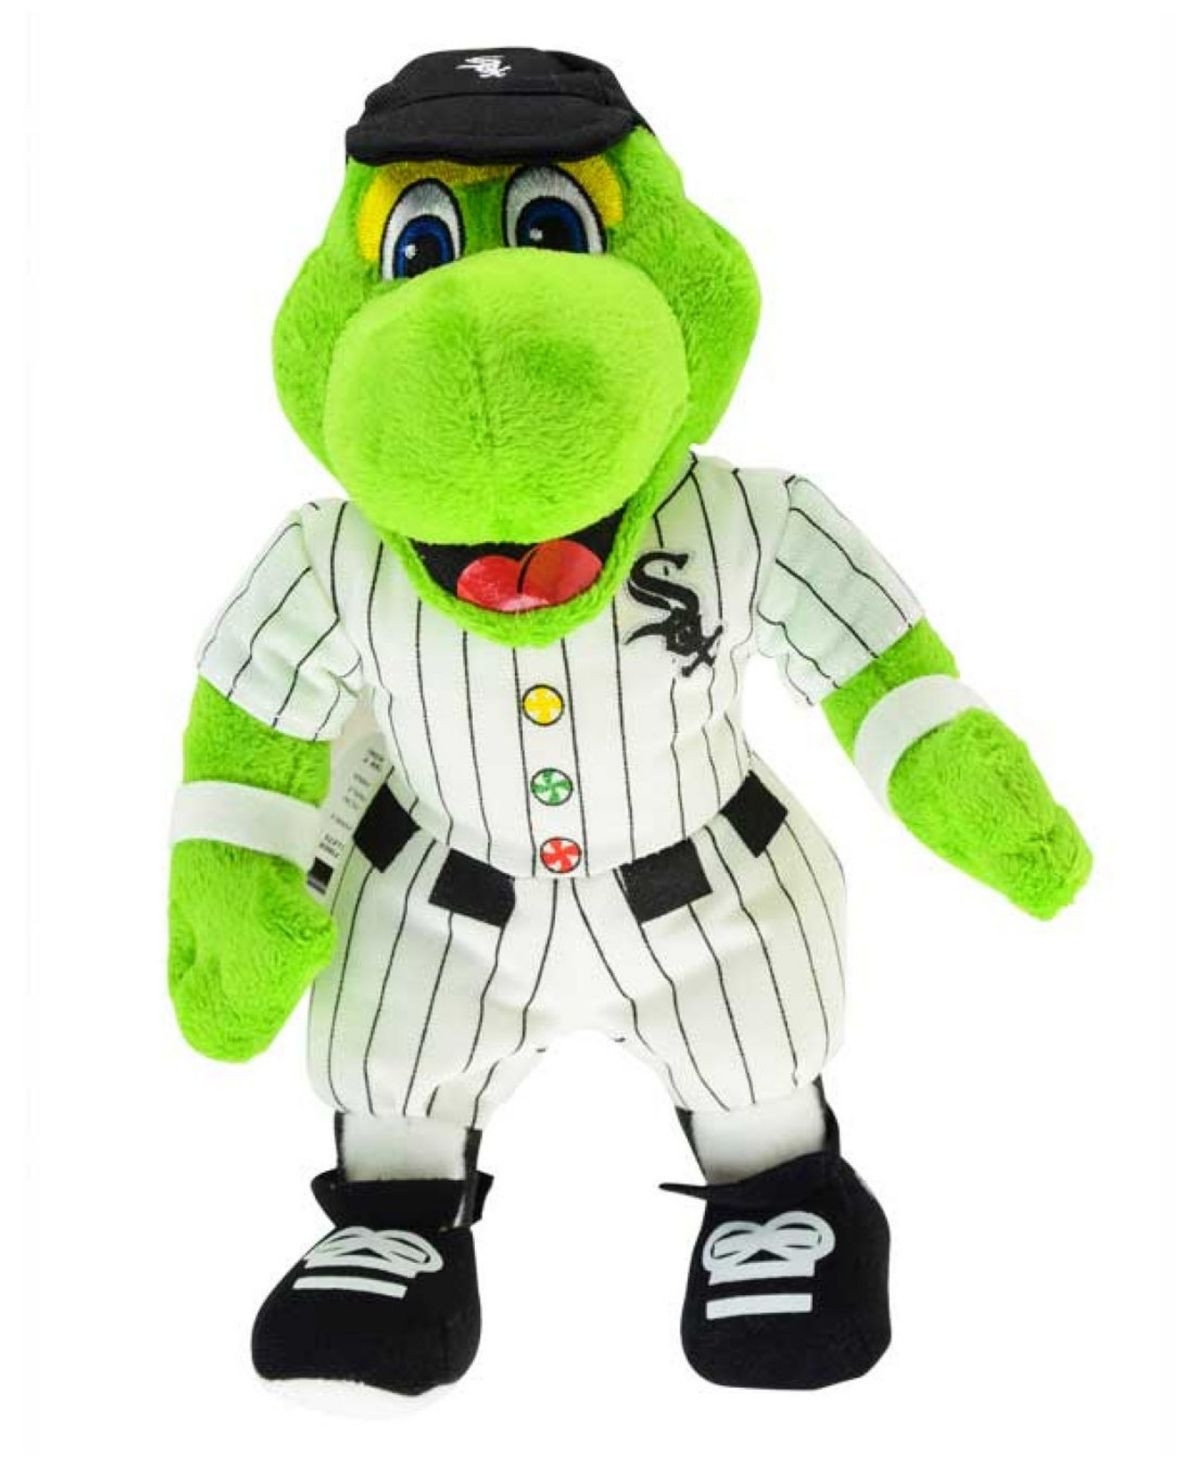 Forever Collectibles Southpaw Chicago White Sox 8 Inch Plush Mascot Reviews Sports Fan Shop By Lids Men Macy S In 2020 Chicago White Sox White Sox Logo Mascot